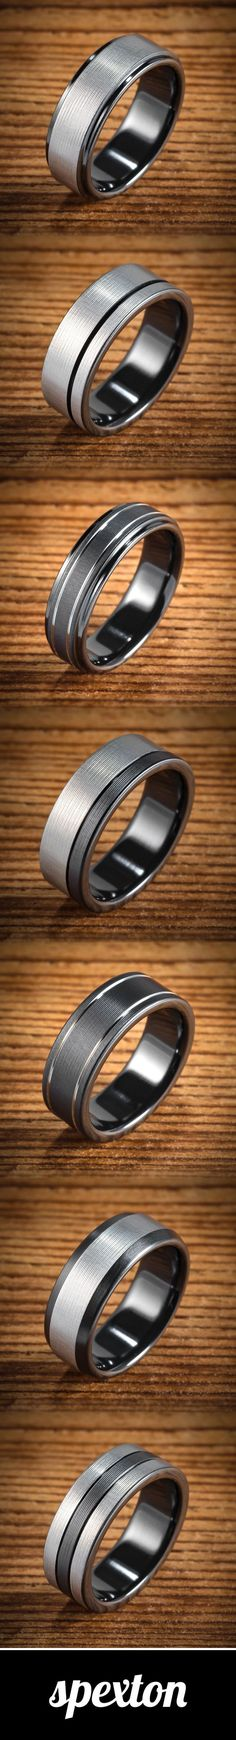 Black & Silver Bi-Color Black Zirconium Men's Wedding Bands custom made by Spexton